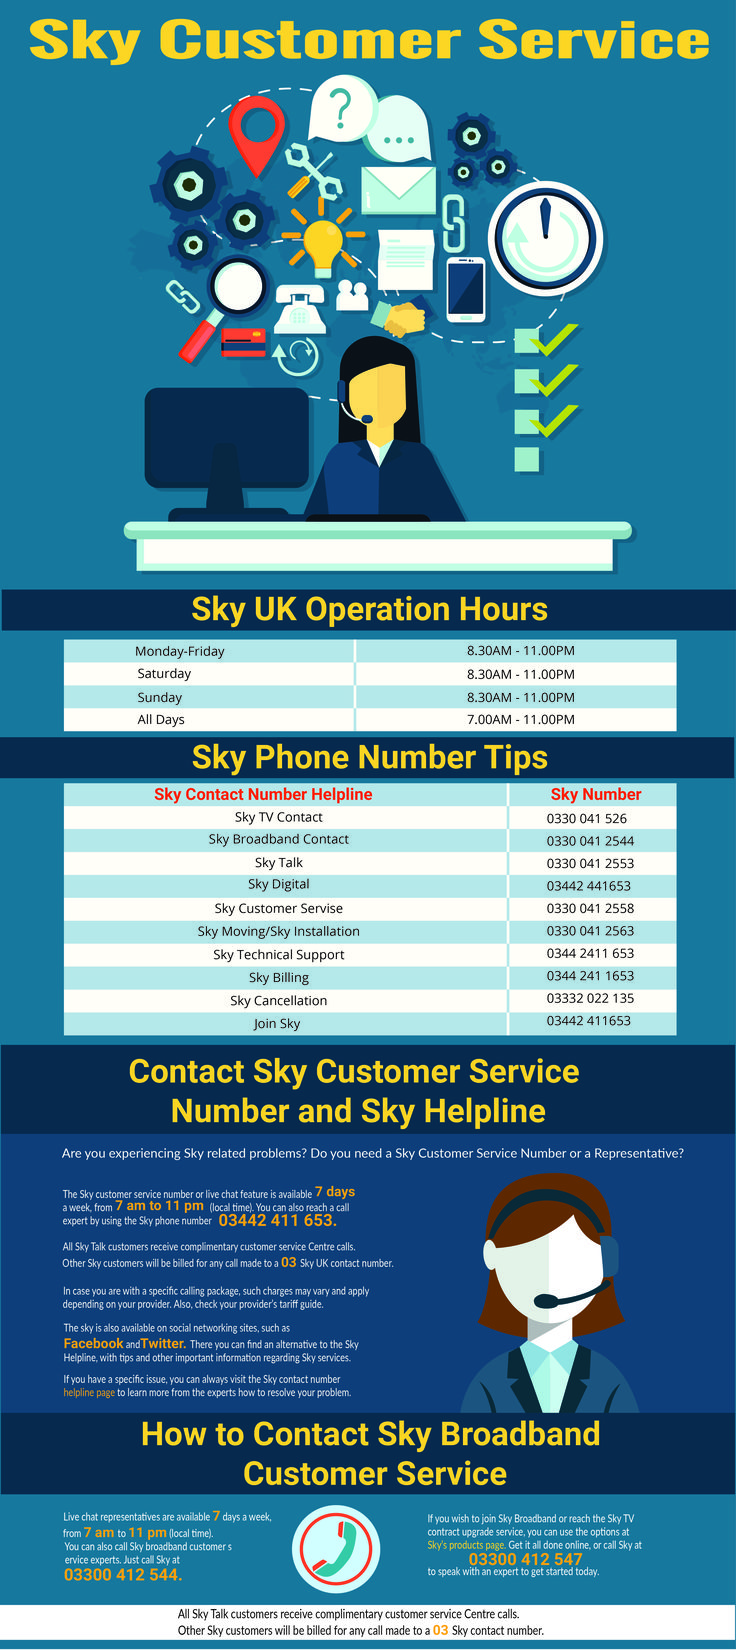 Contact Sky by calling 0844 306 9107 or Freephone 0800 151 2747 to get straight through to Sky customer services. Sky customer service will be able to help you with your Sky TV, Sky Broadband and Sky Talk services.